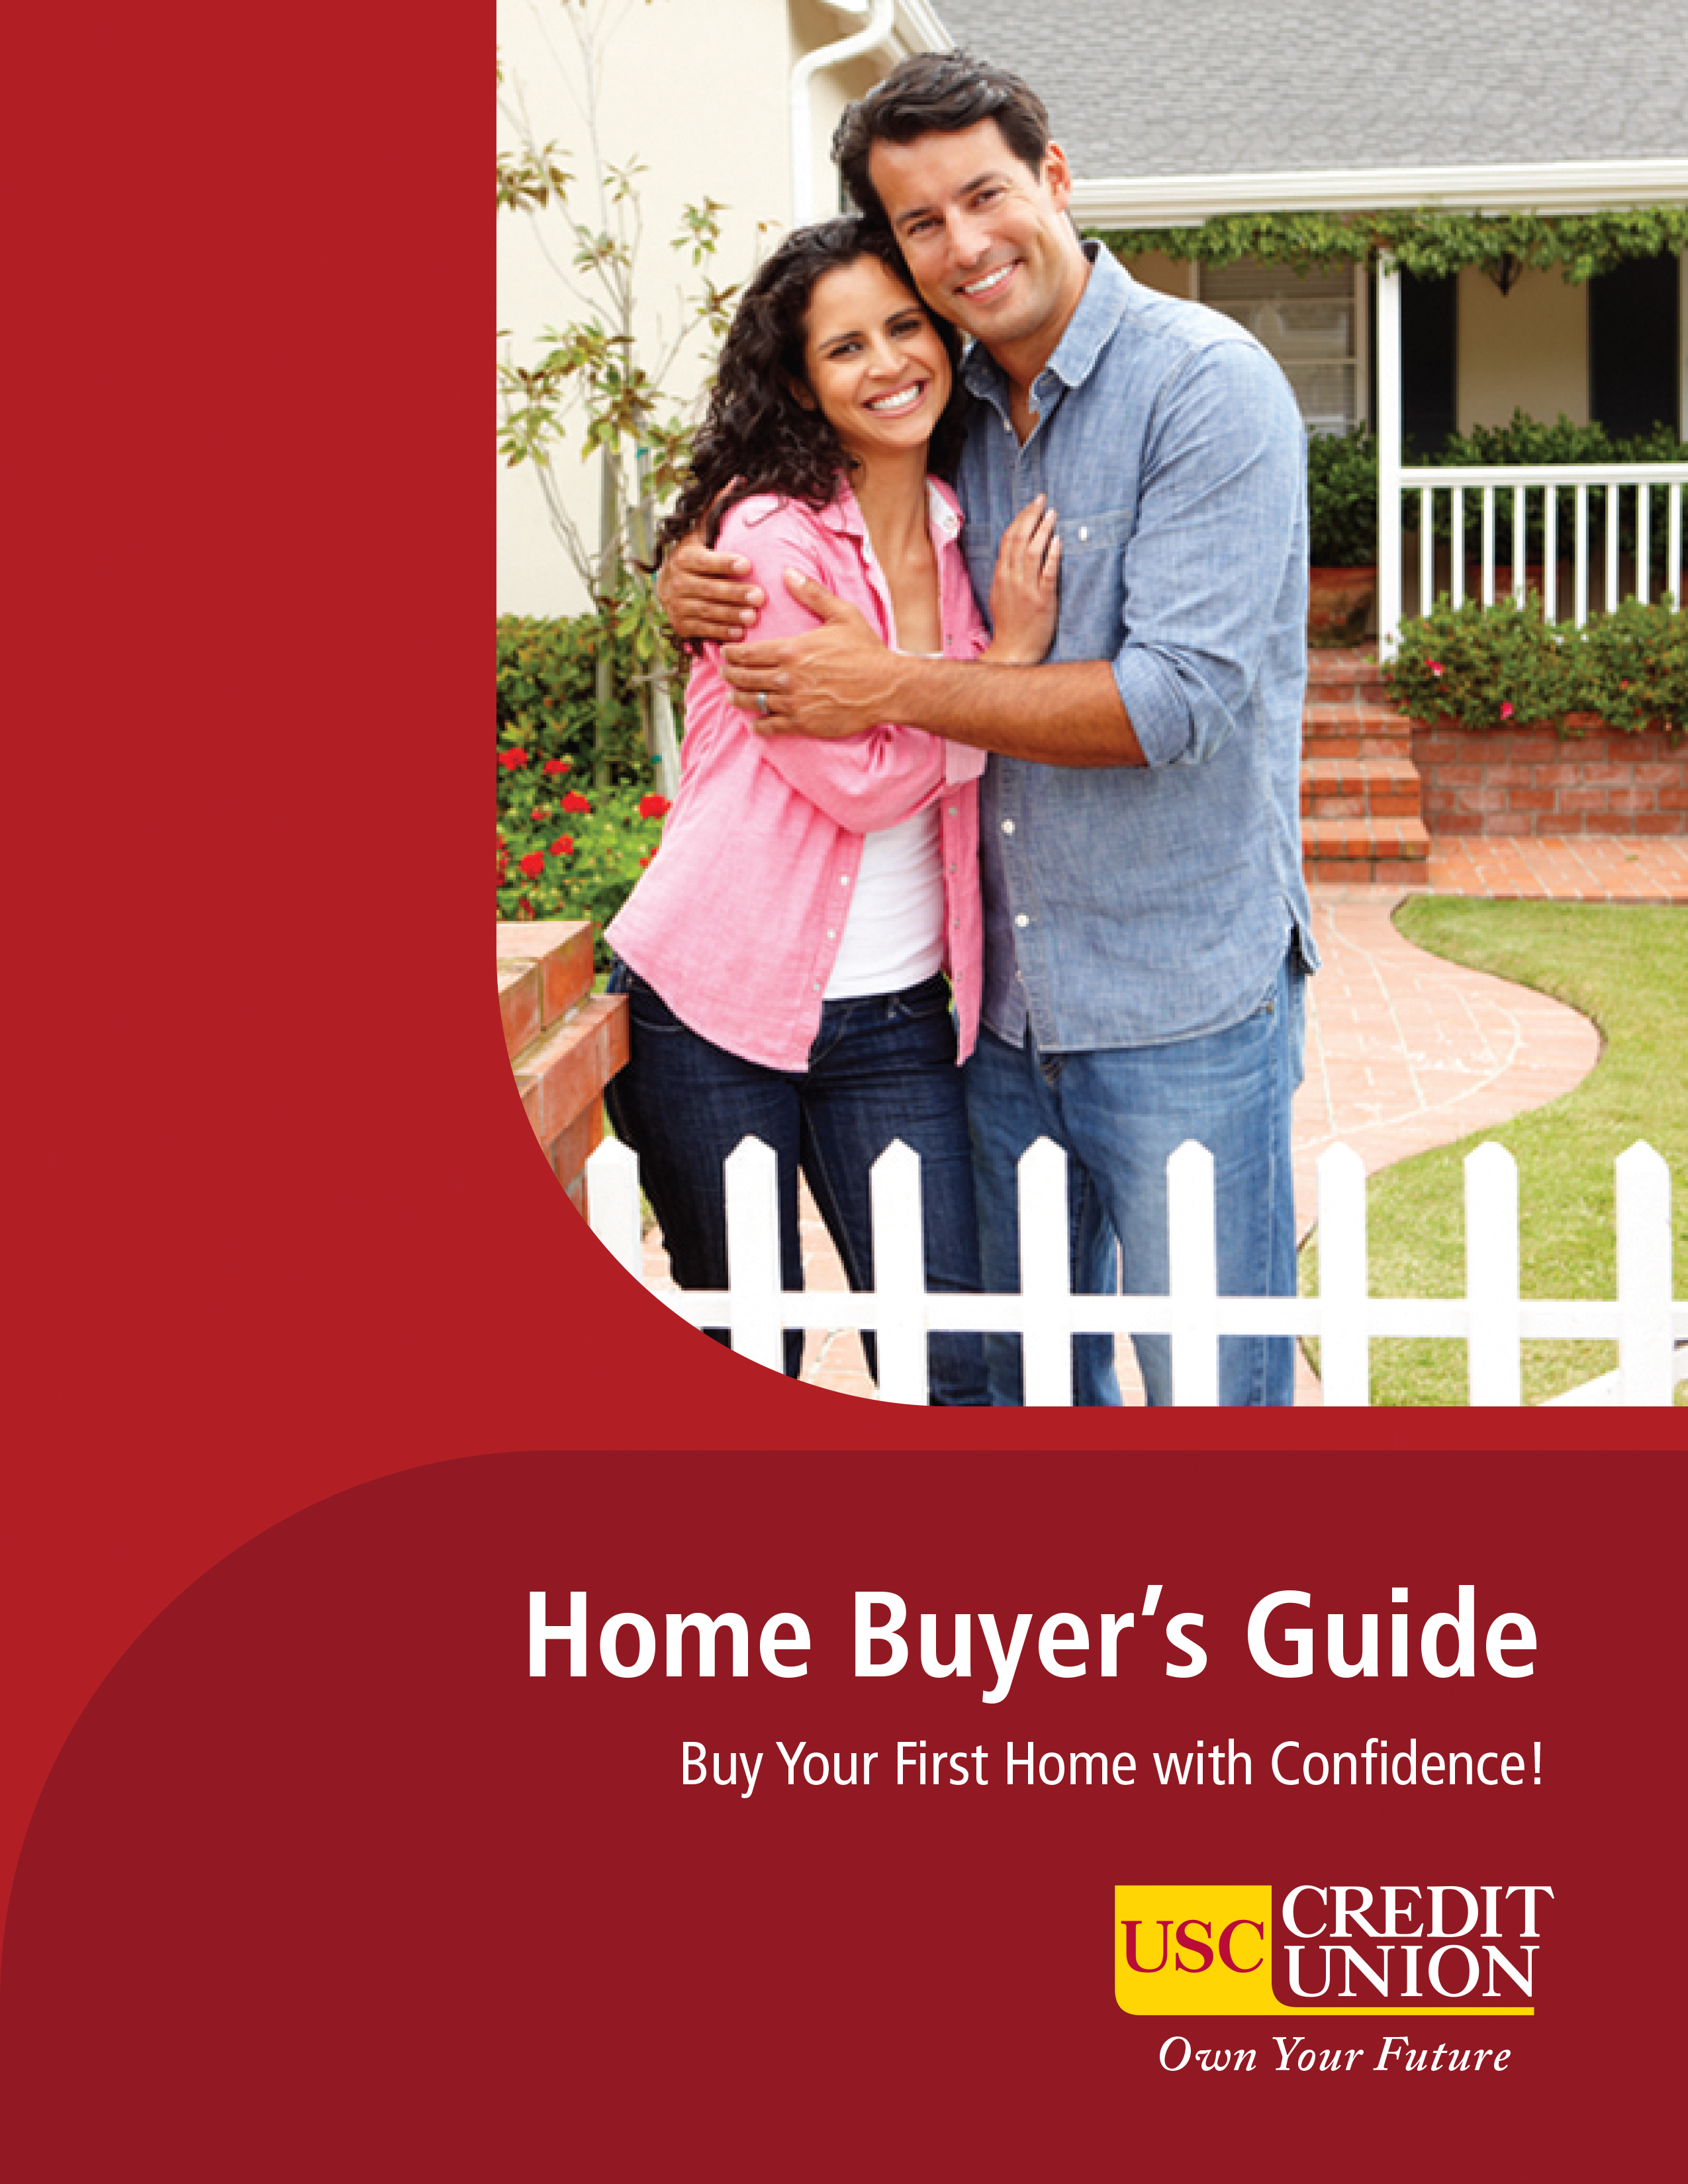 USC Credit Union Home Buyers Guide